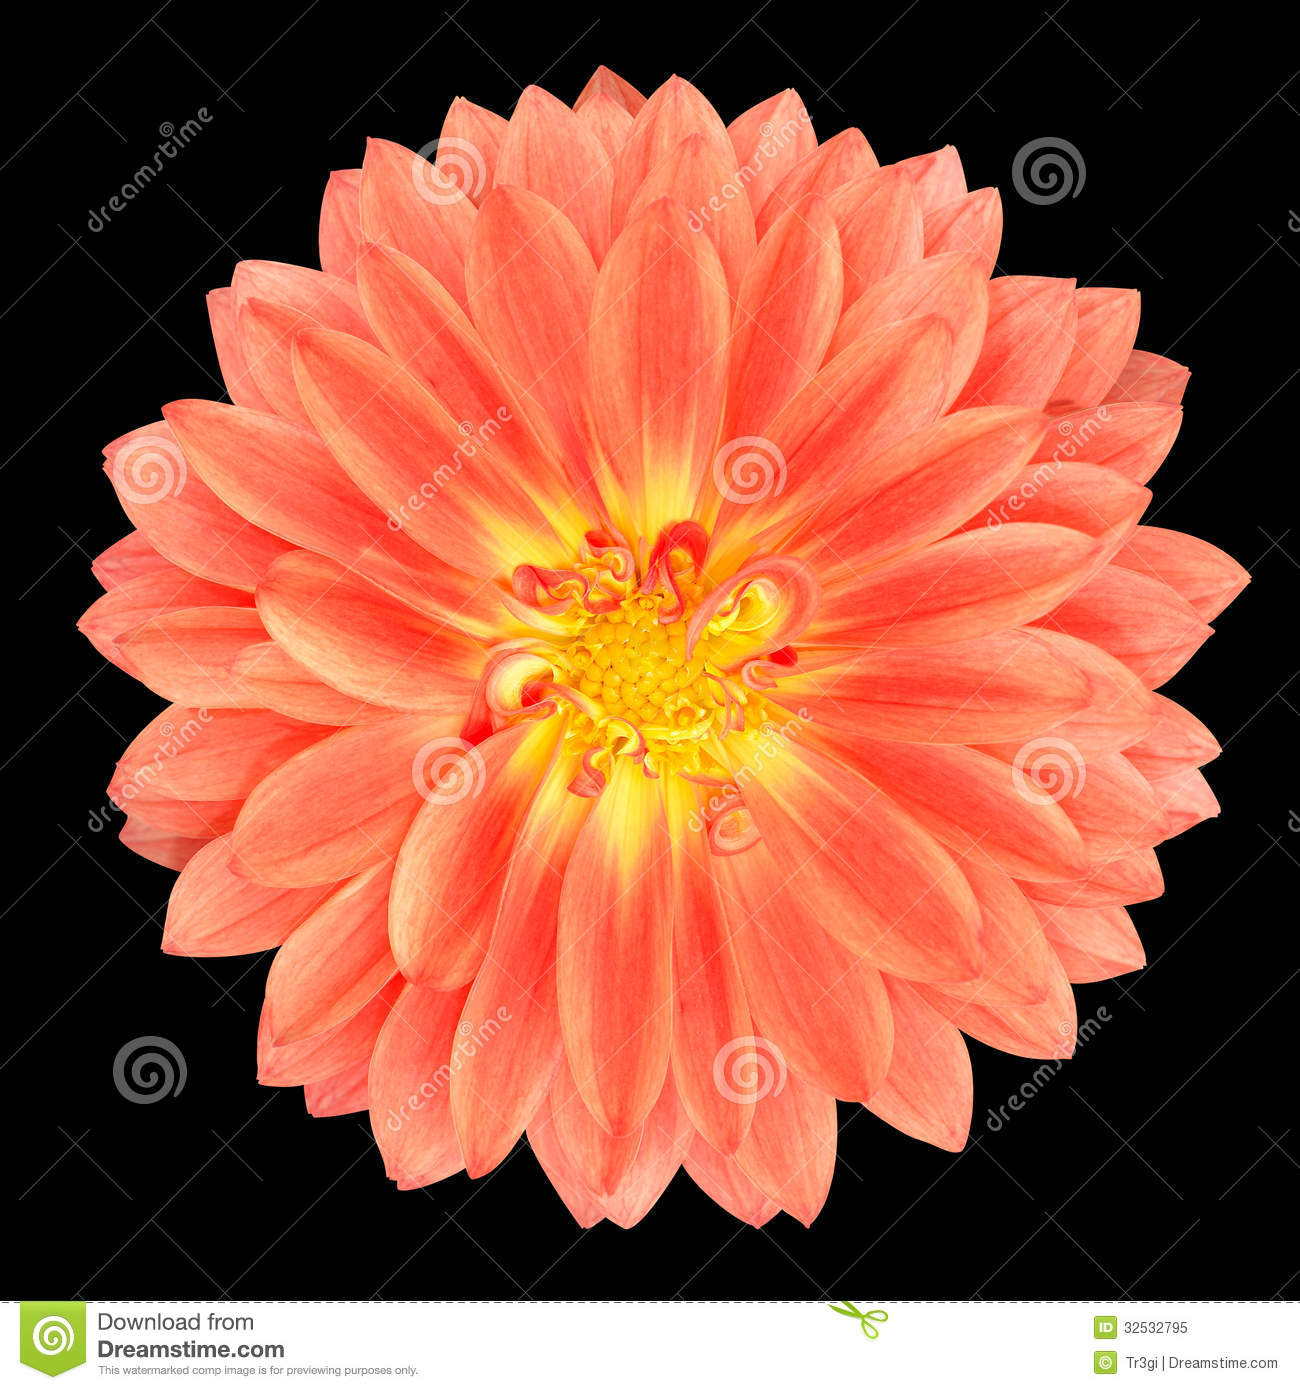 Calendula (Pot Marigold) Flower Petals Stock Photos.